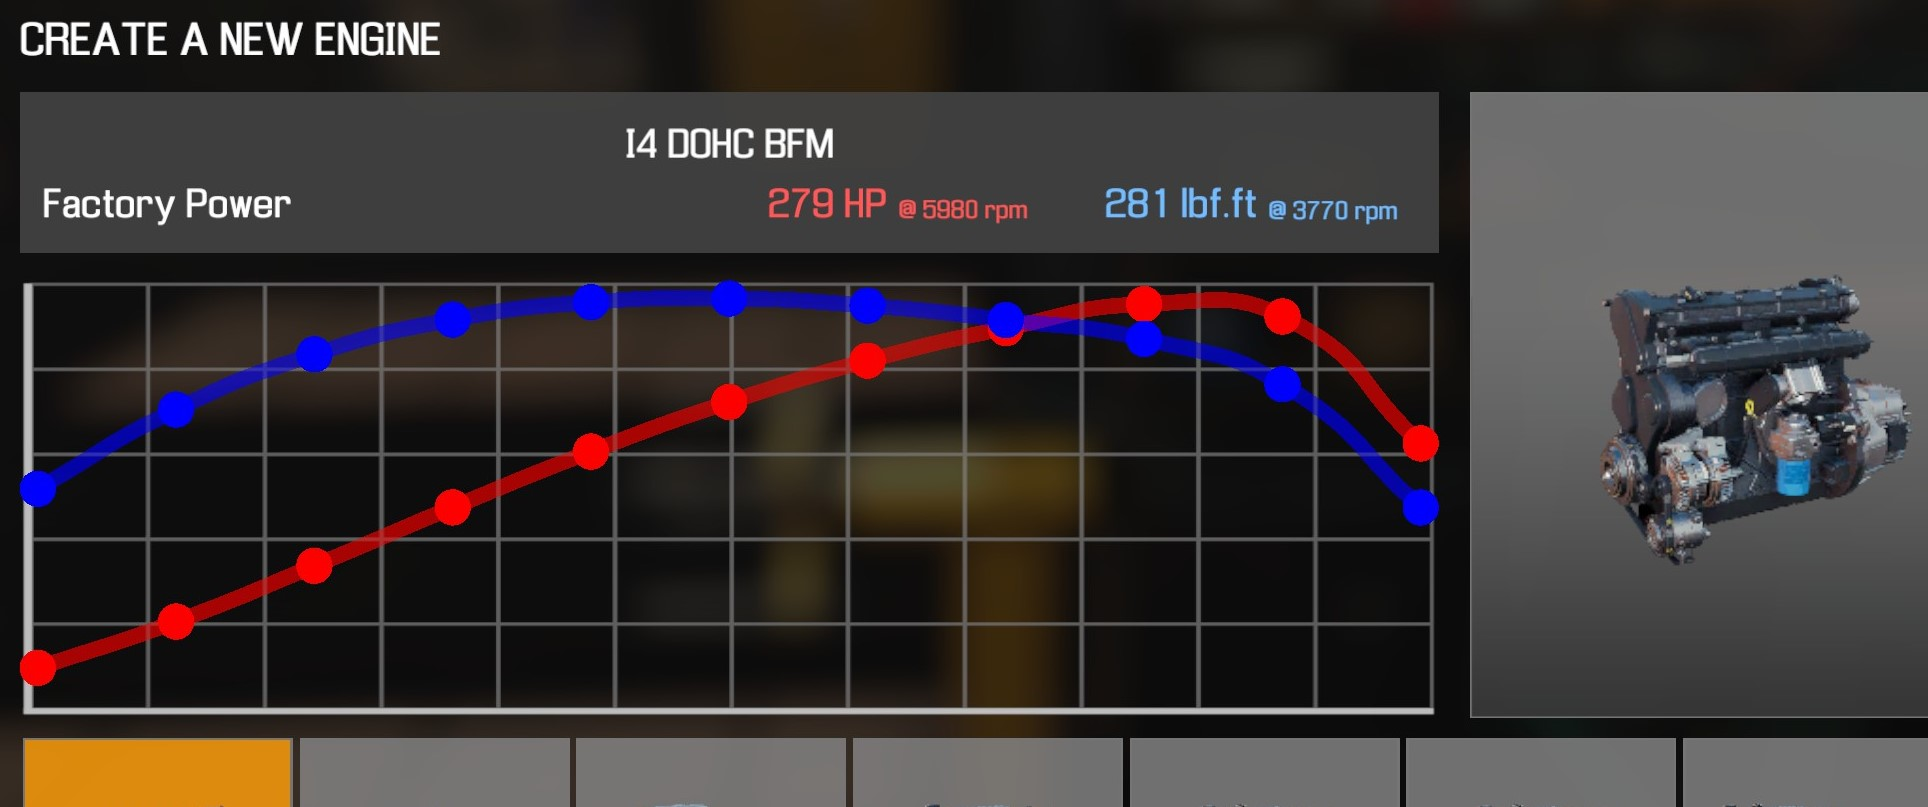 Car Mechanic Simulator 2021 - How to Buy Engine Parts and All Engines in Game Information - I4 DOHC BFM - E7FB108